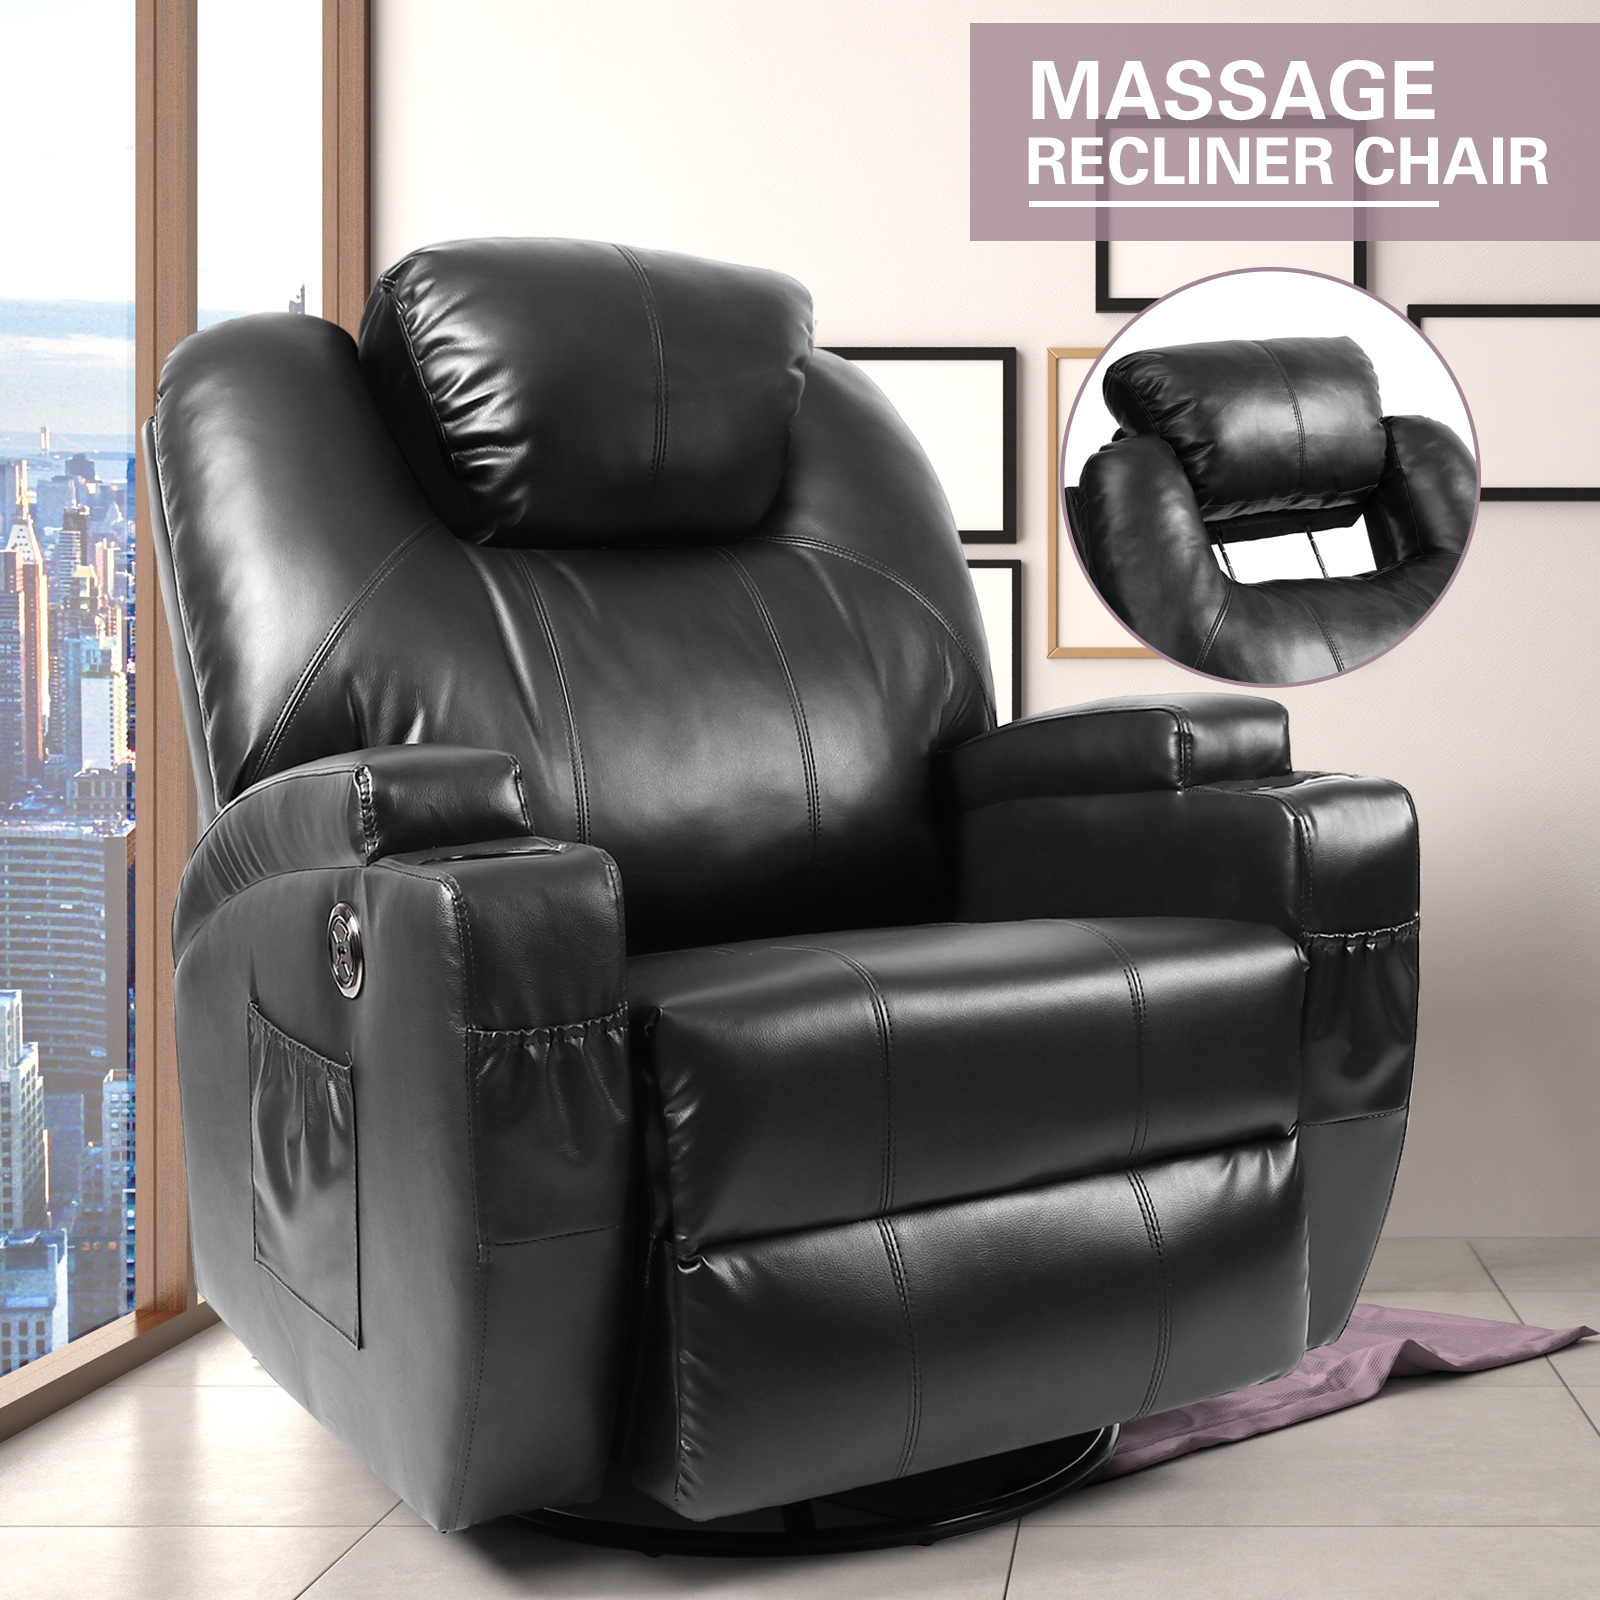 Surprising Details About Electric Heated Full Body Massage Chair Zero Gravity Leather Power Recliner Sofa Short Links Chair Design For Home Short Linksinfo